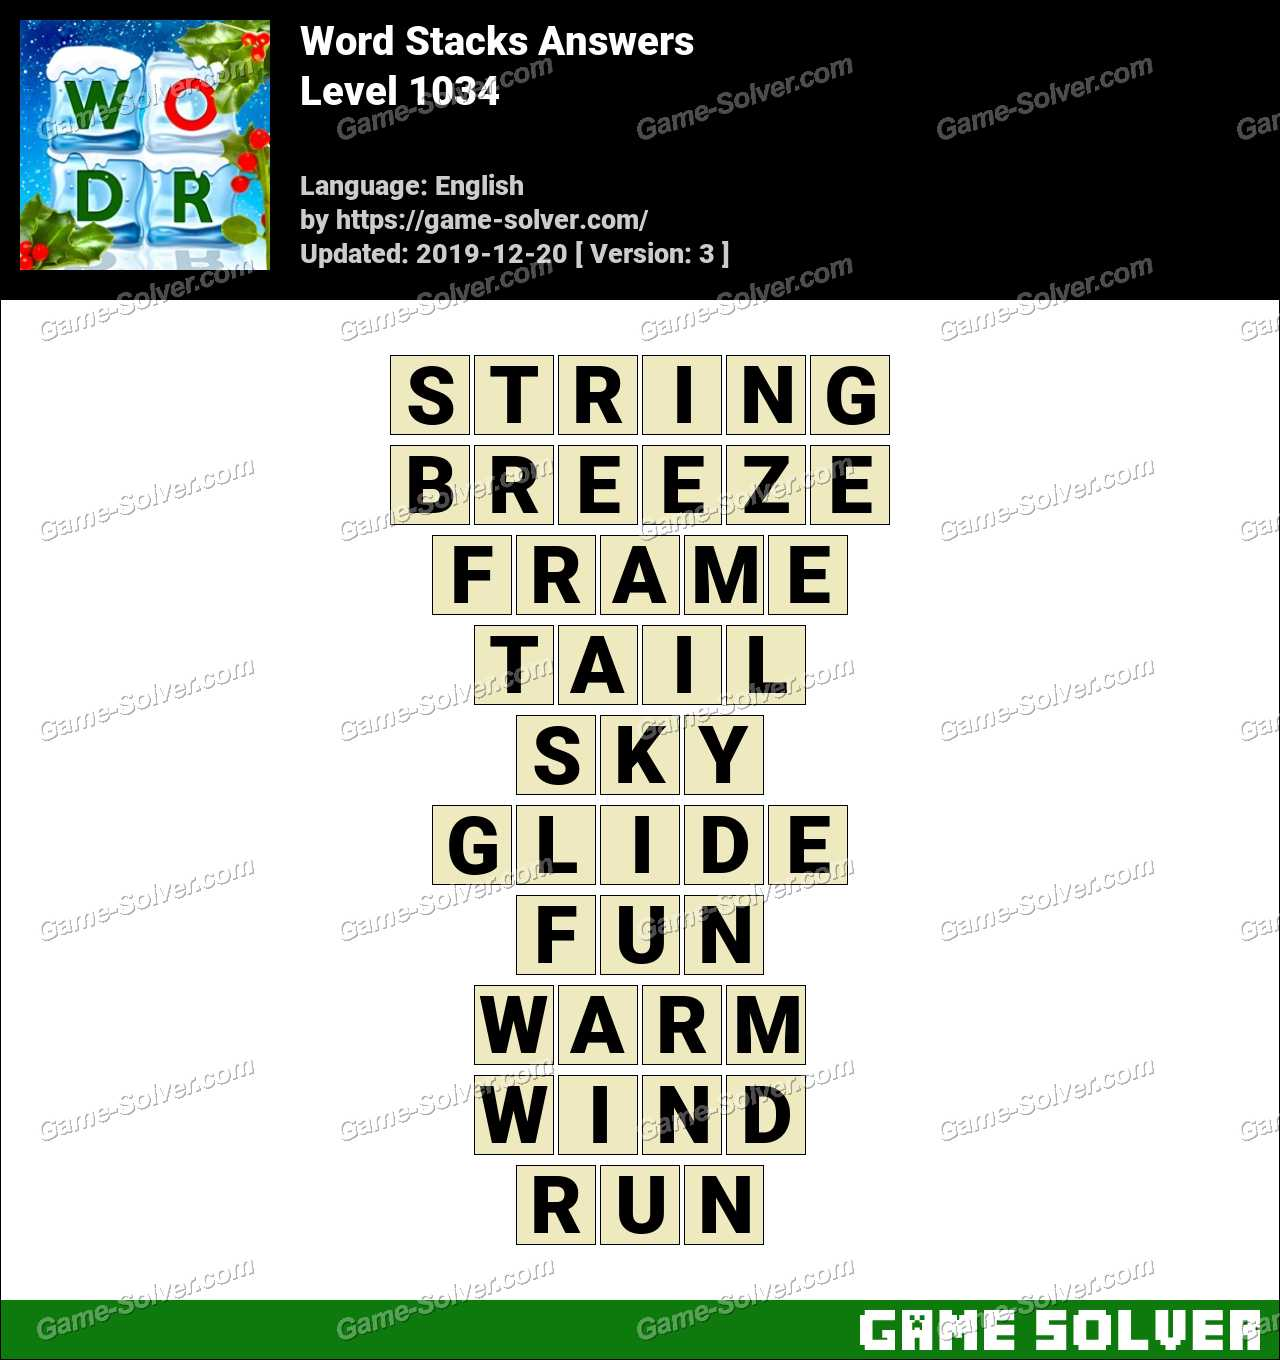 Word Stacks Level 1034 Answers